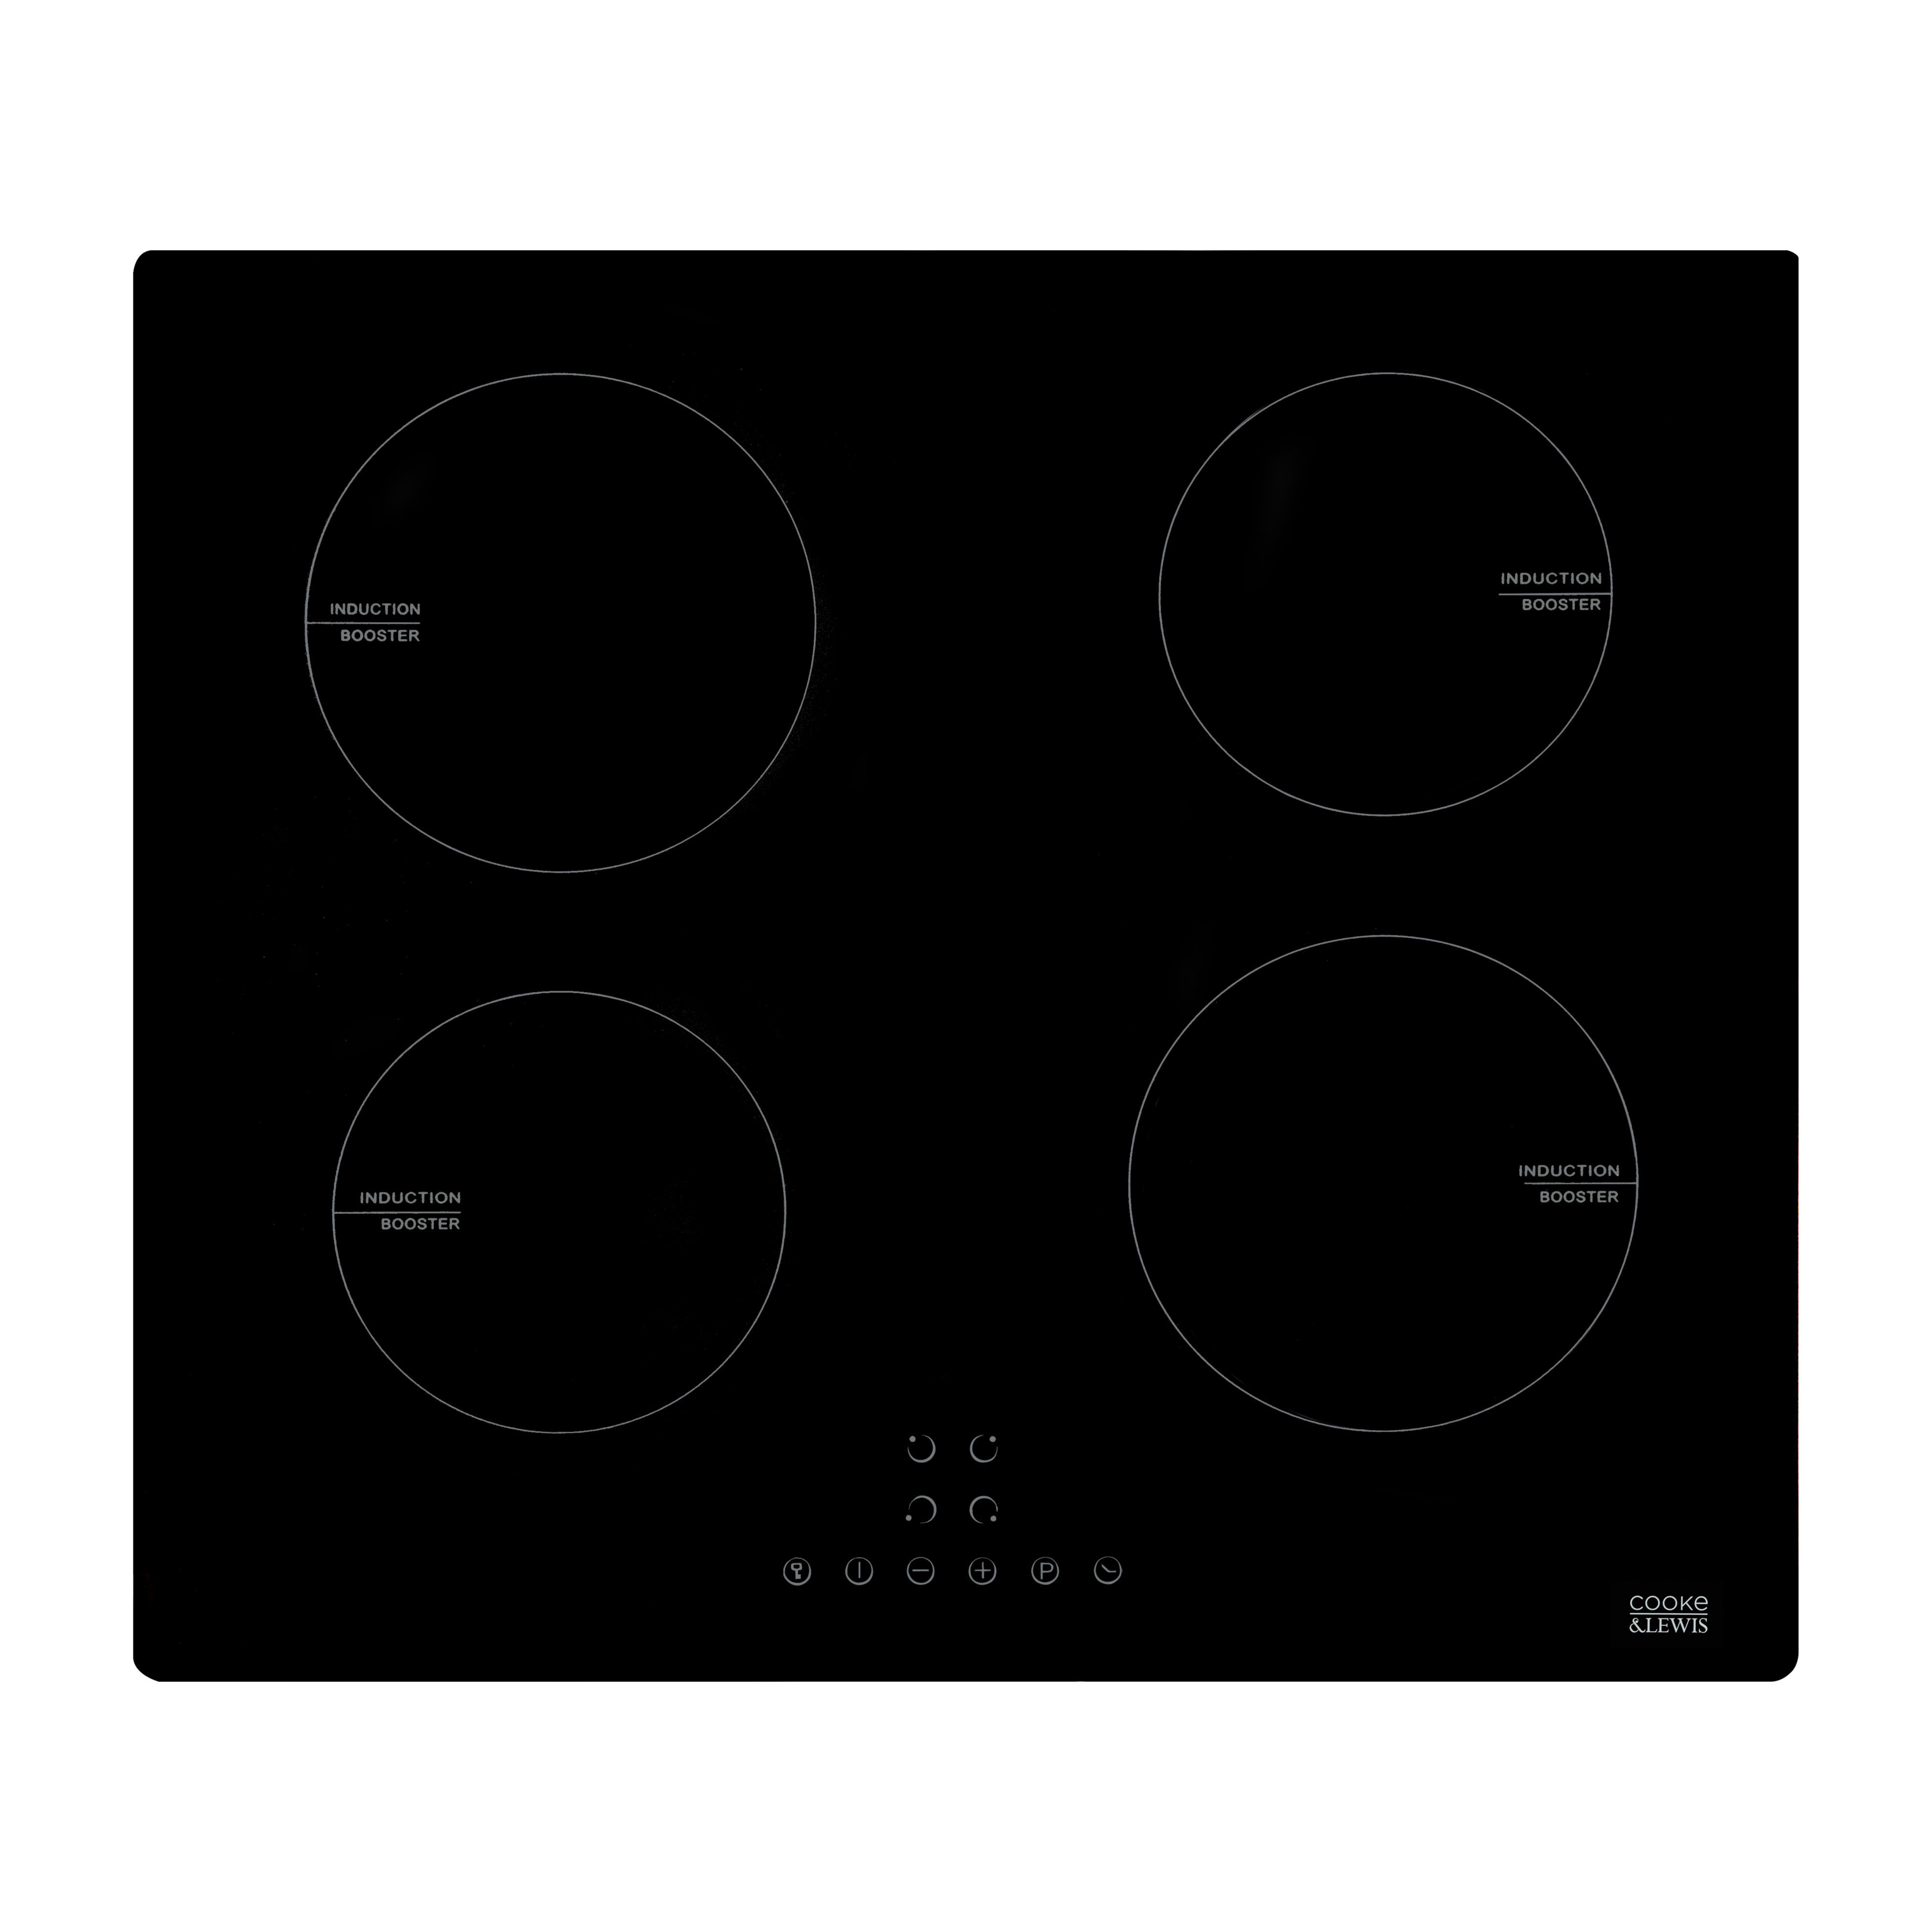 Cooke & Lewis CLIND60 4 Zone Black Gl Induction Hob, (W)590mm | Departments on kitchen baseboards, kitchen wheels, kitchen ventilation, kitchen construction, kitchen pipes, kitchen electrical box, kitchen diagram, kitchen devices, kitchen glass, kitchen kitchen, kitchen modules, kitchen circuit requirements, kitchen computer, kitchen filter, kitchen electrical outlets, kitchen schematic, kitchen tiling, kitchen service, kitchen repair, kitchen installation,